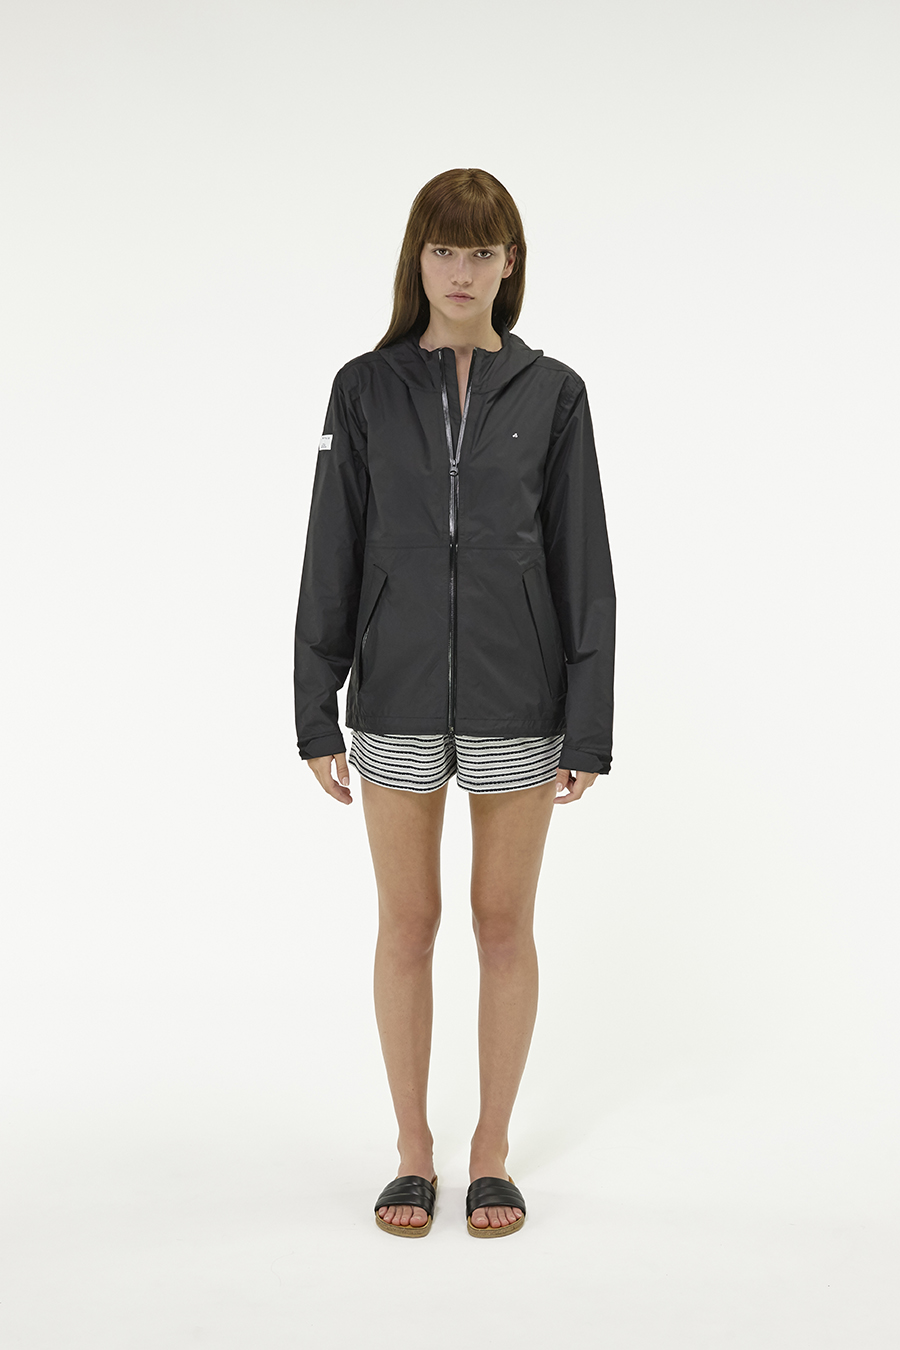 Huffer_Q3-16_W-Alpine-Jacket_Black-01